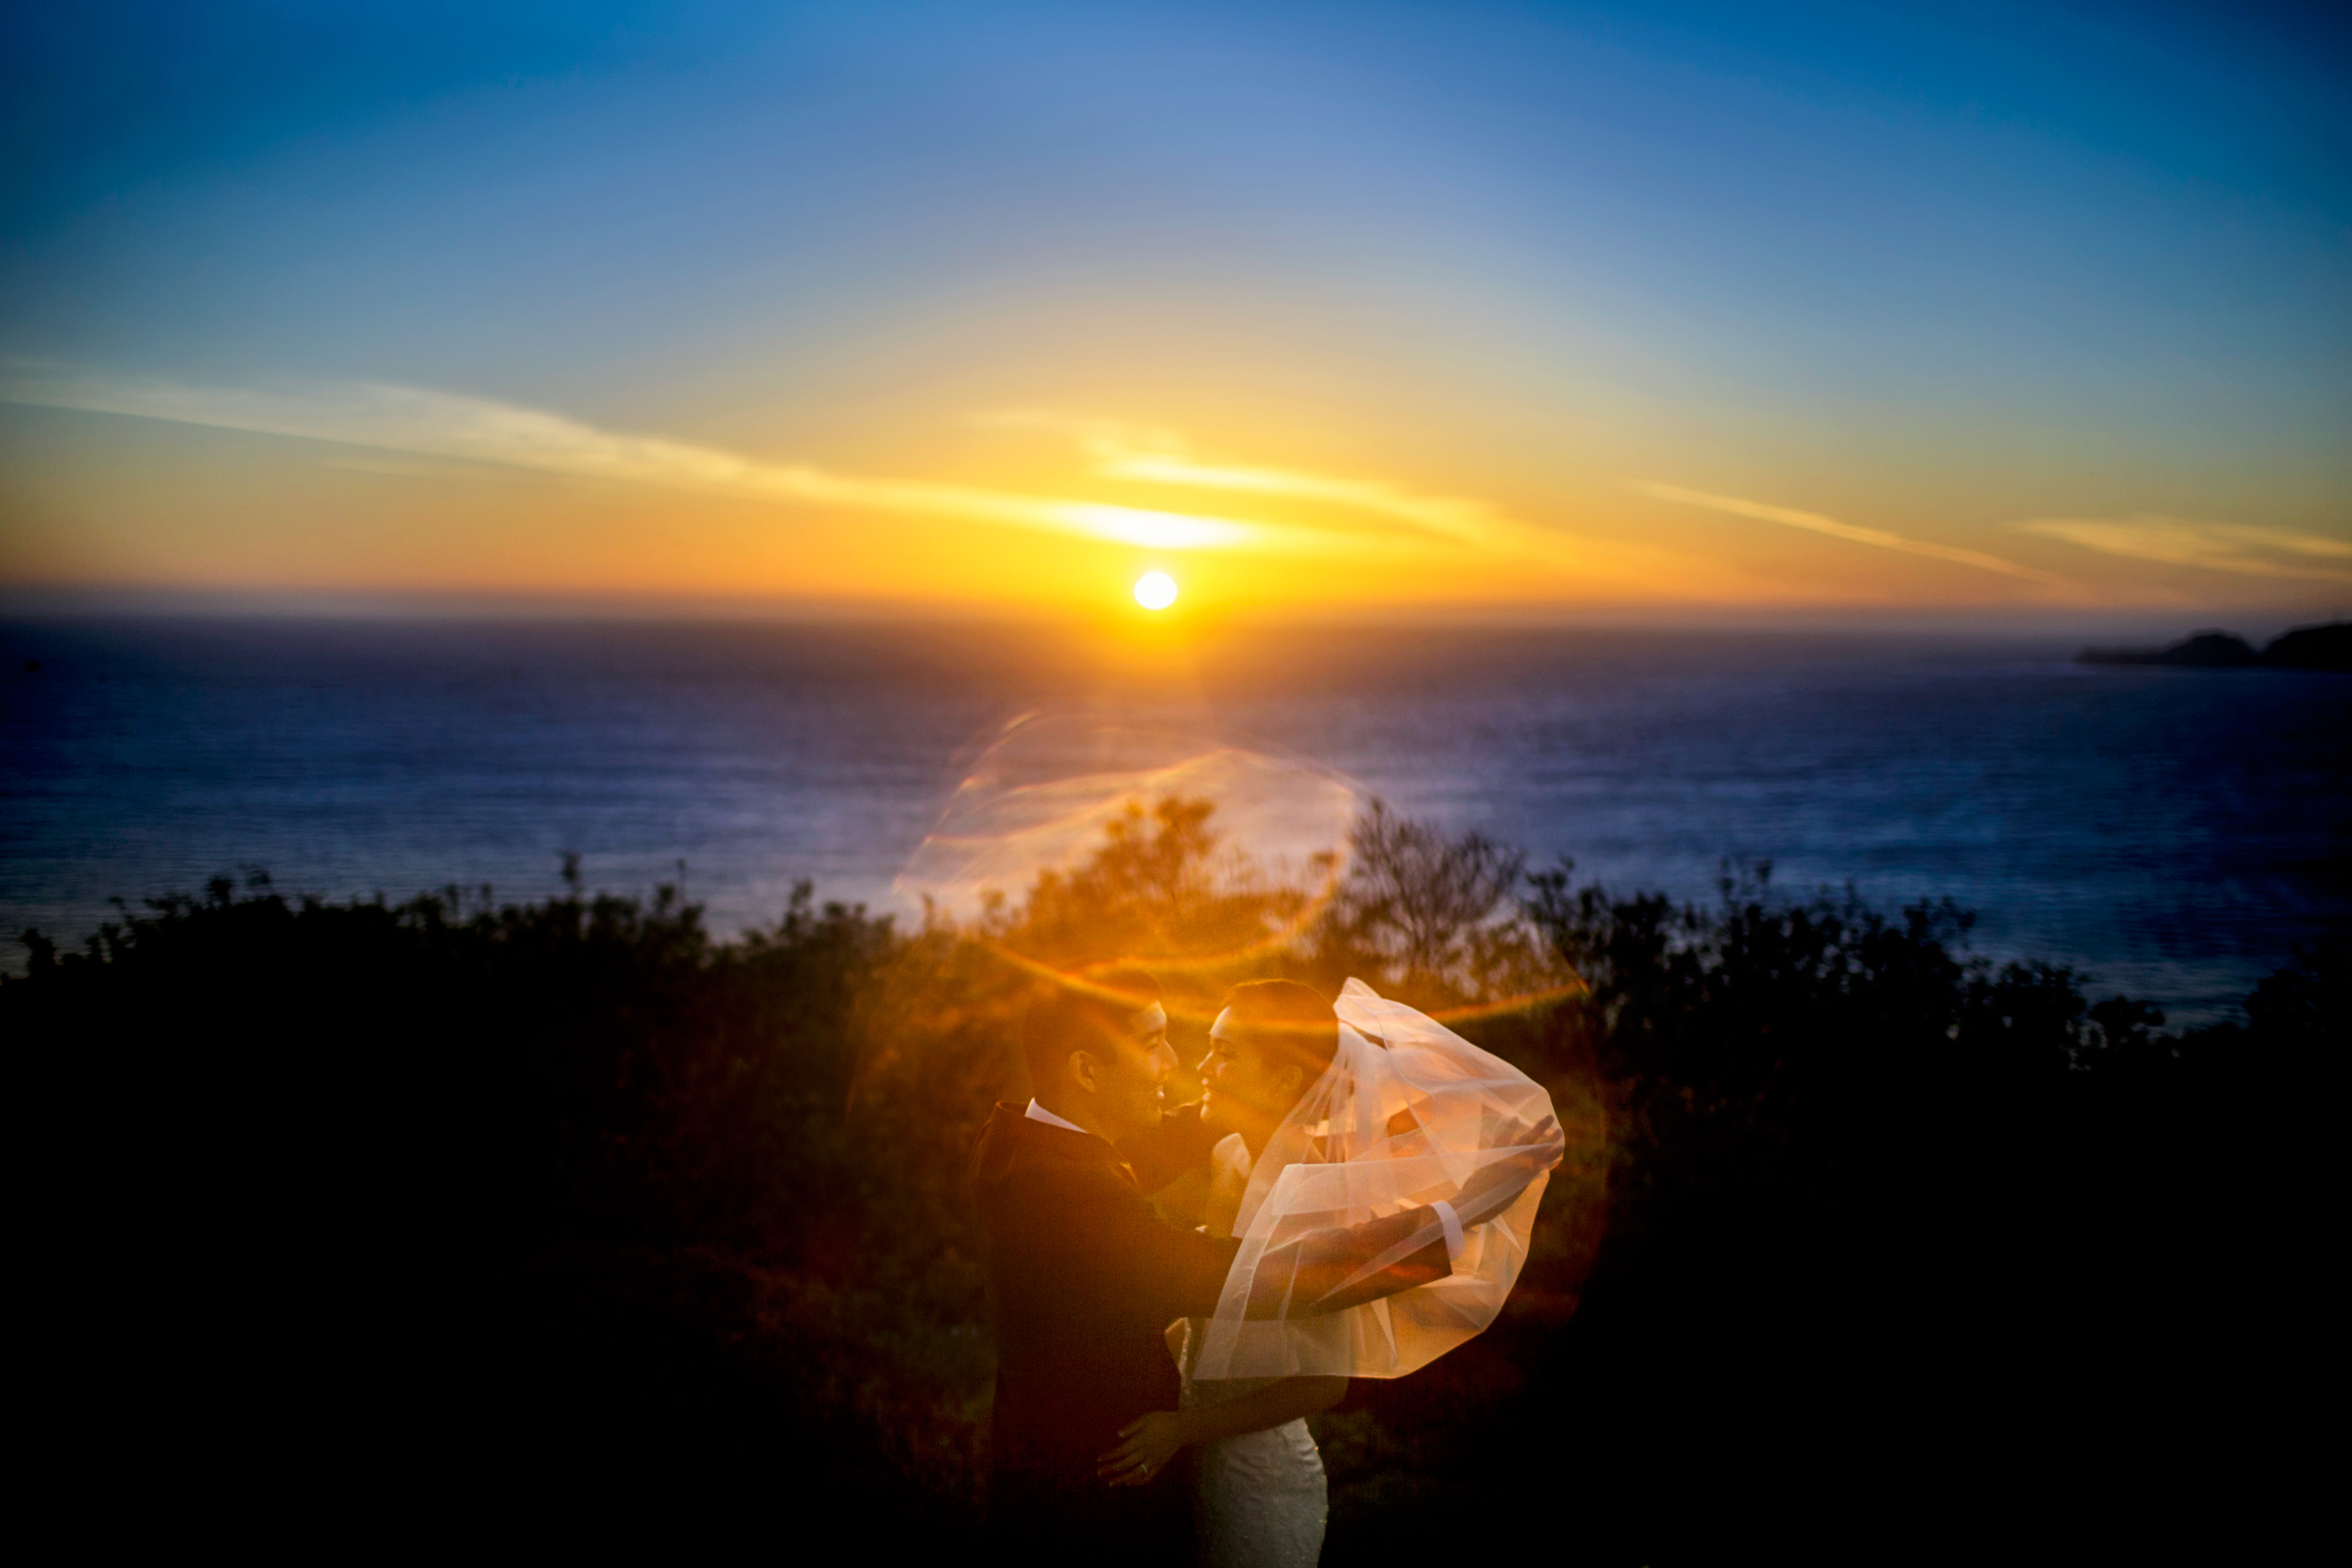 bride-and-groom-golden-hour-with-interesting-lens-flares-photo-by-chrisman-studios